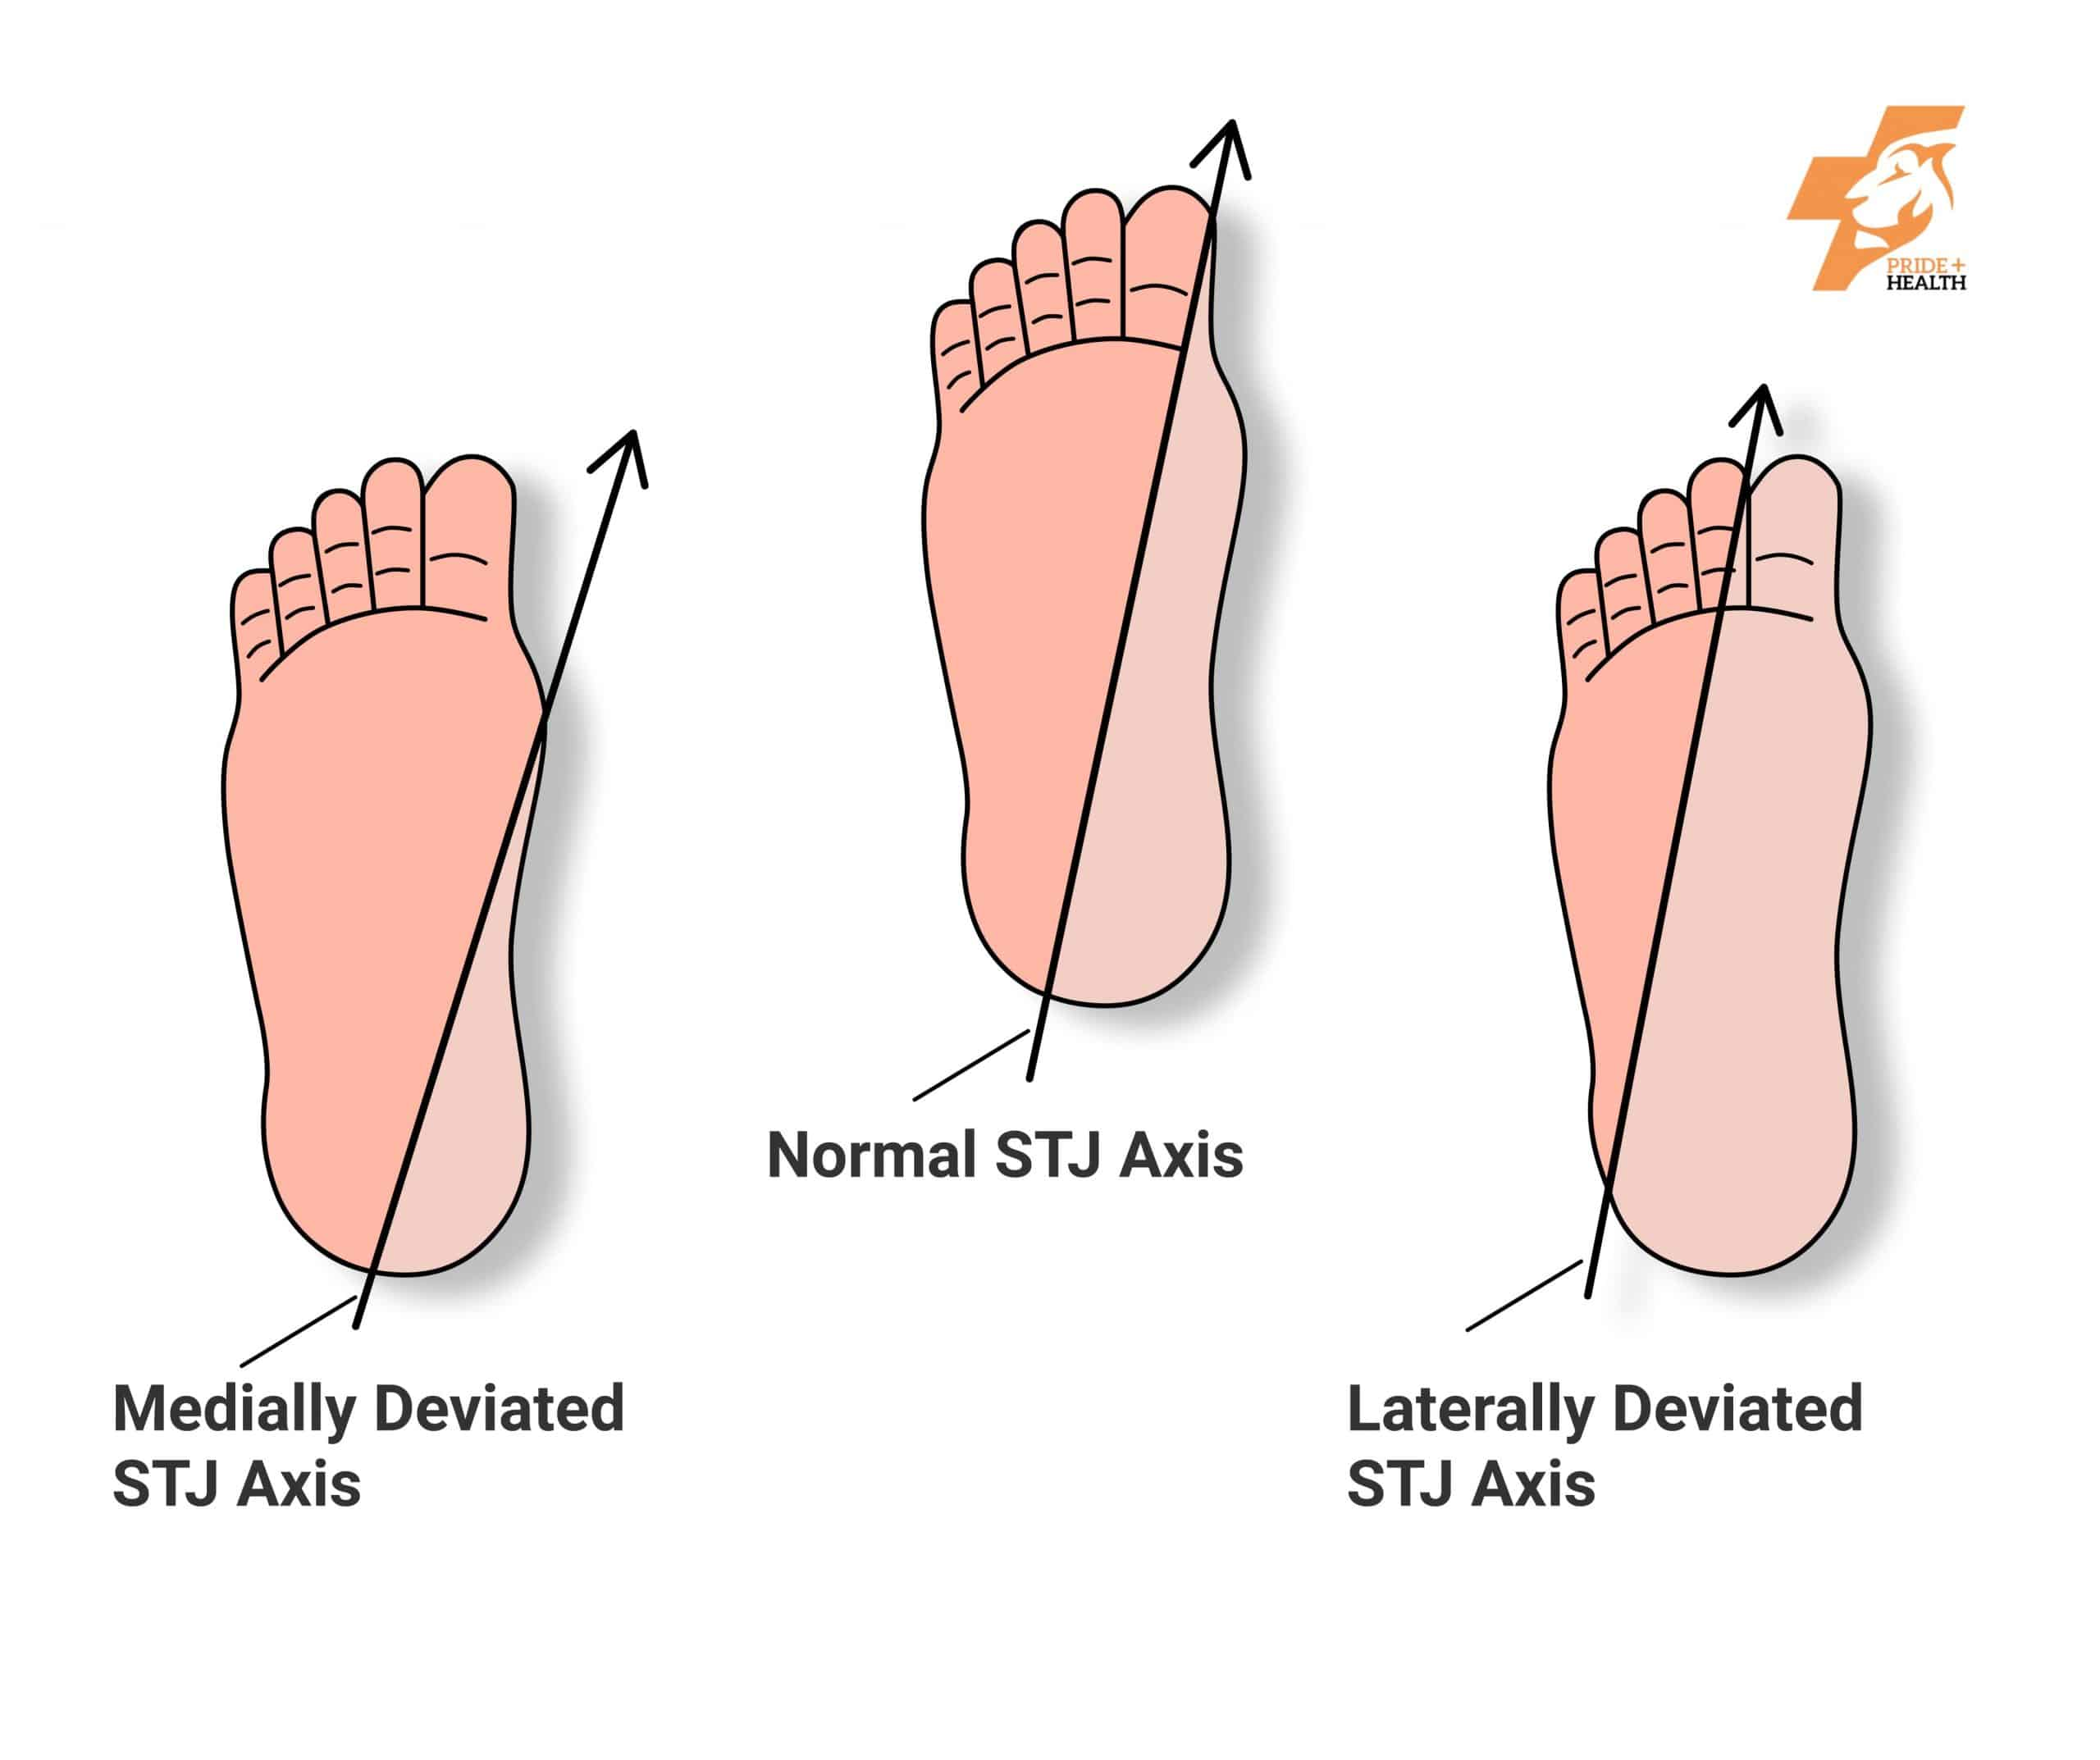 Orthotics provide support for the sub talar joint axis